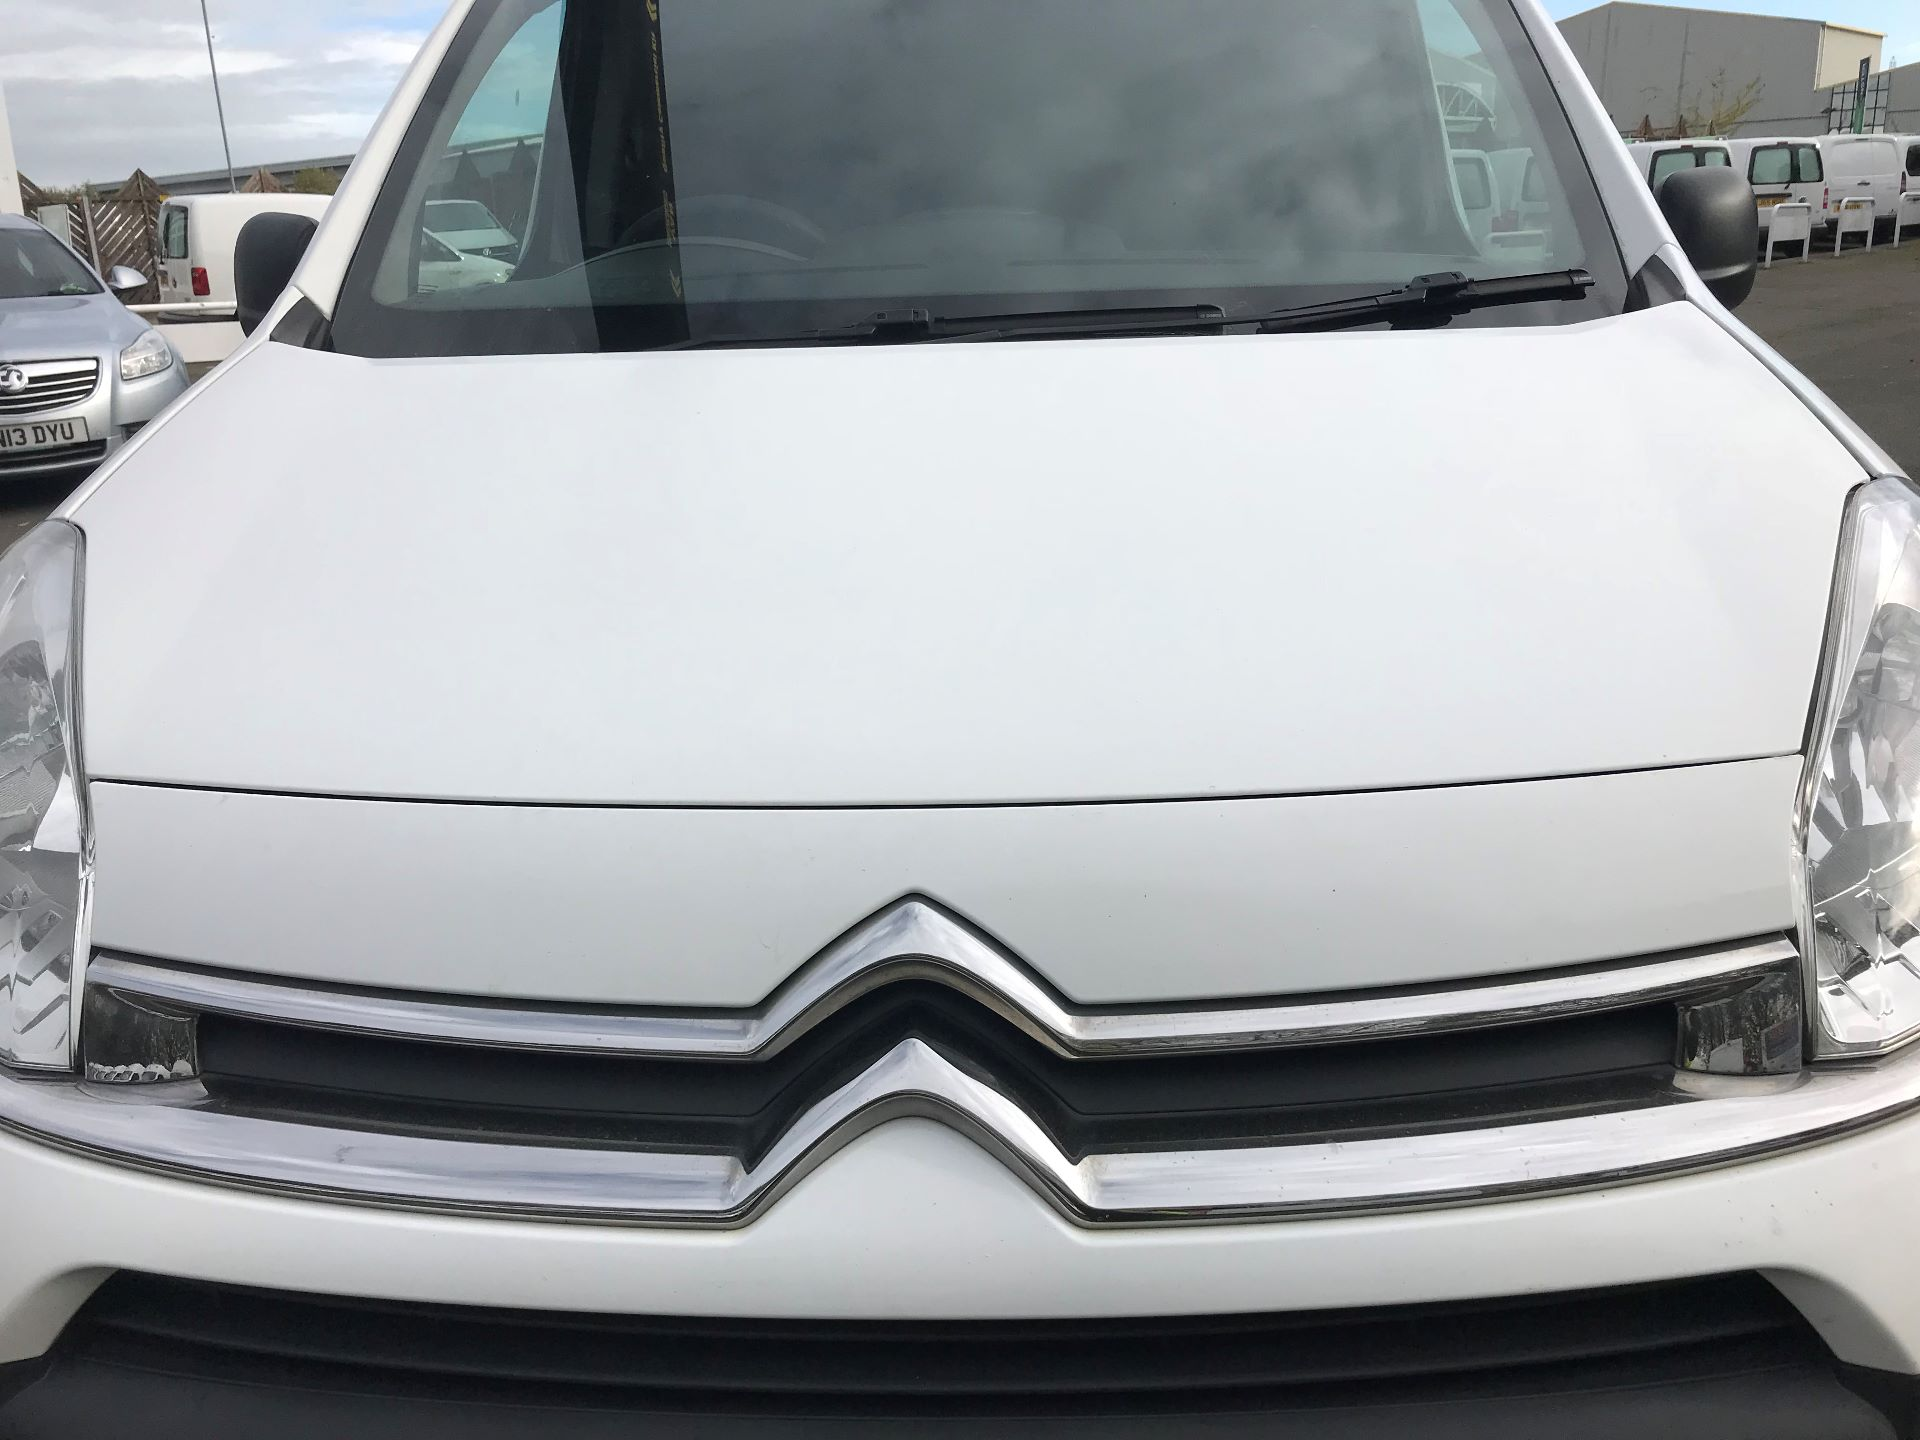 2013 Citroen Berlingo  L1 DIESEL 1.6 HDI 850KG ENTERPRISE 90PS EURO 4/5 (VU63PNX) Image 12